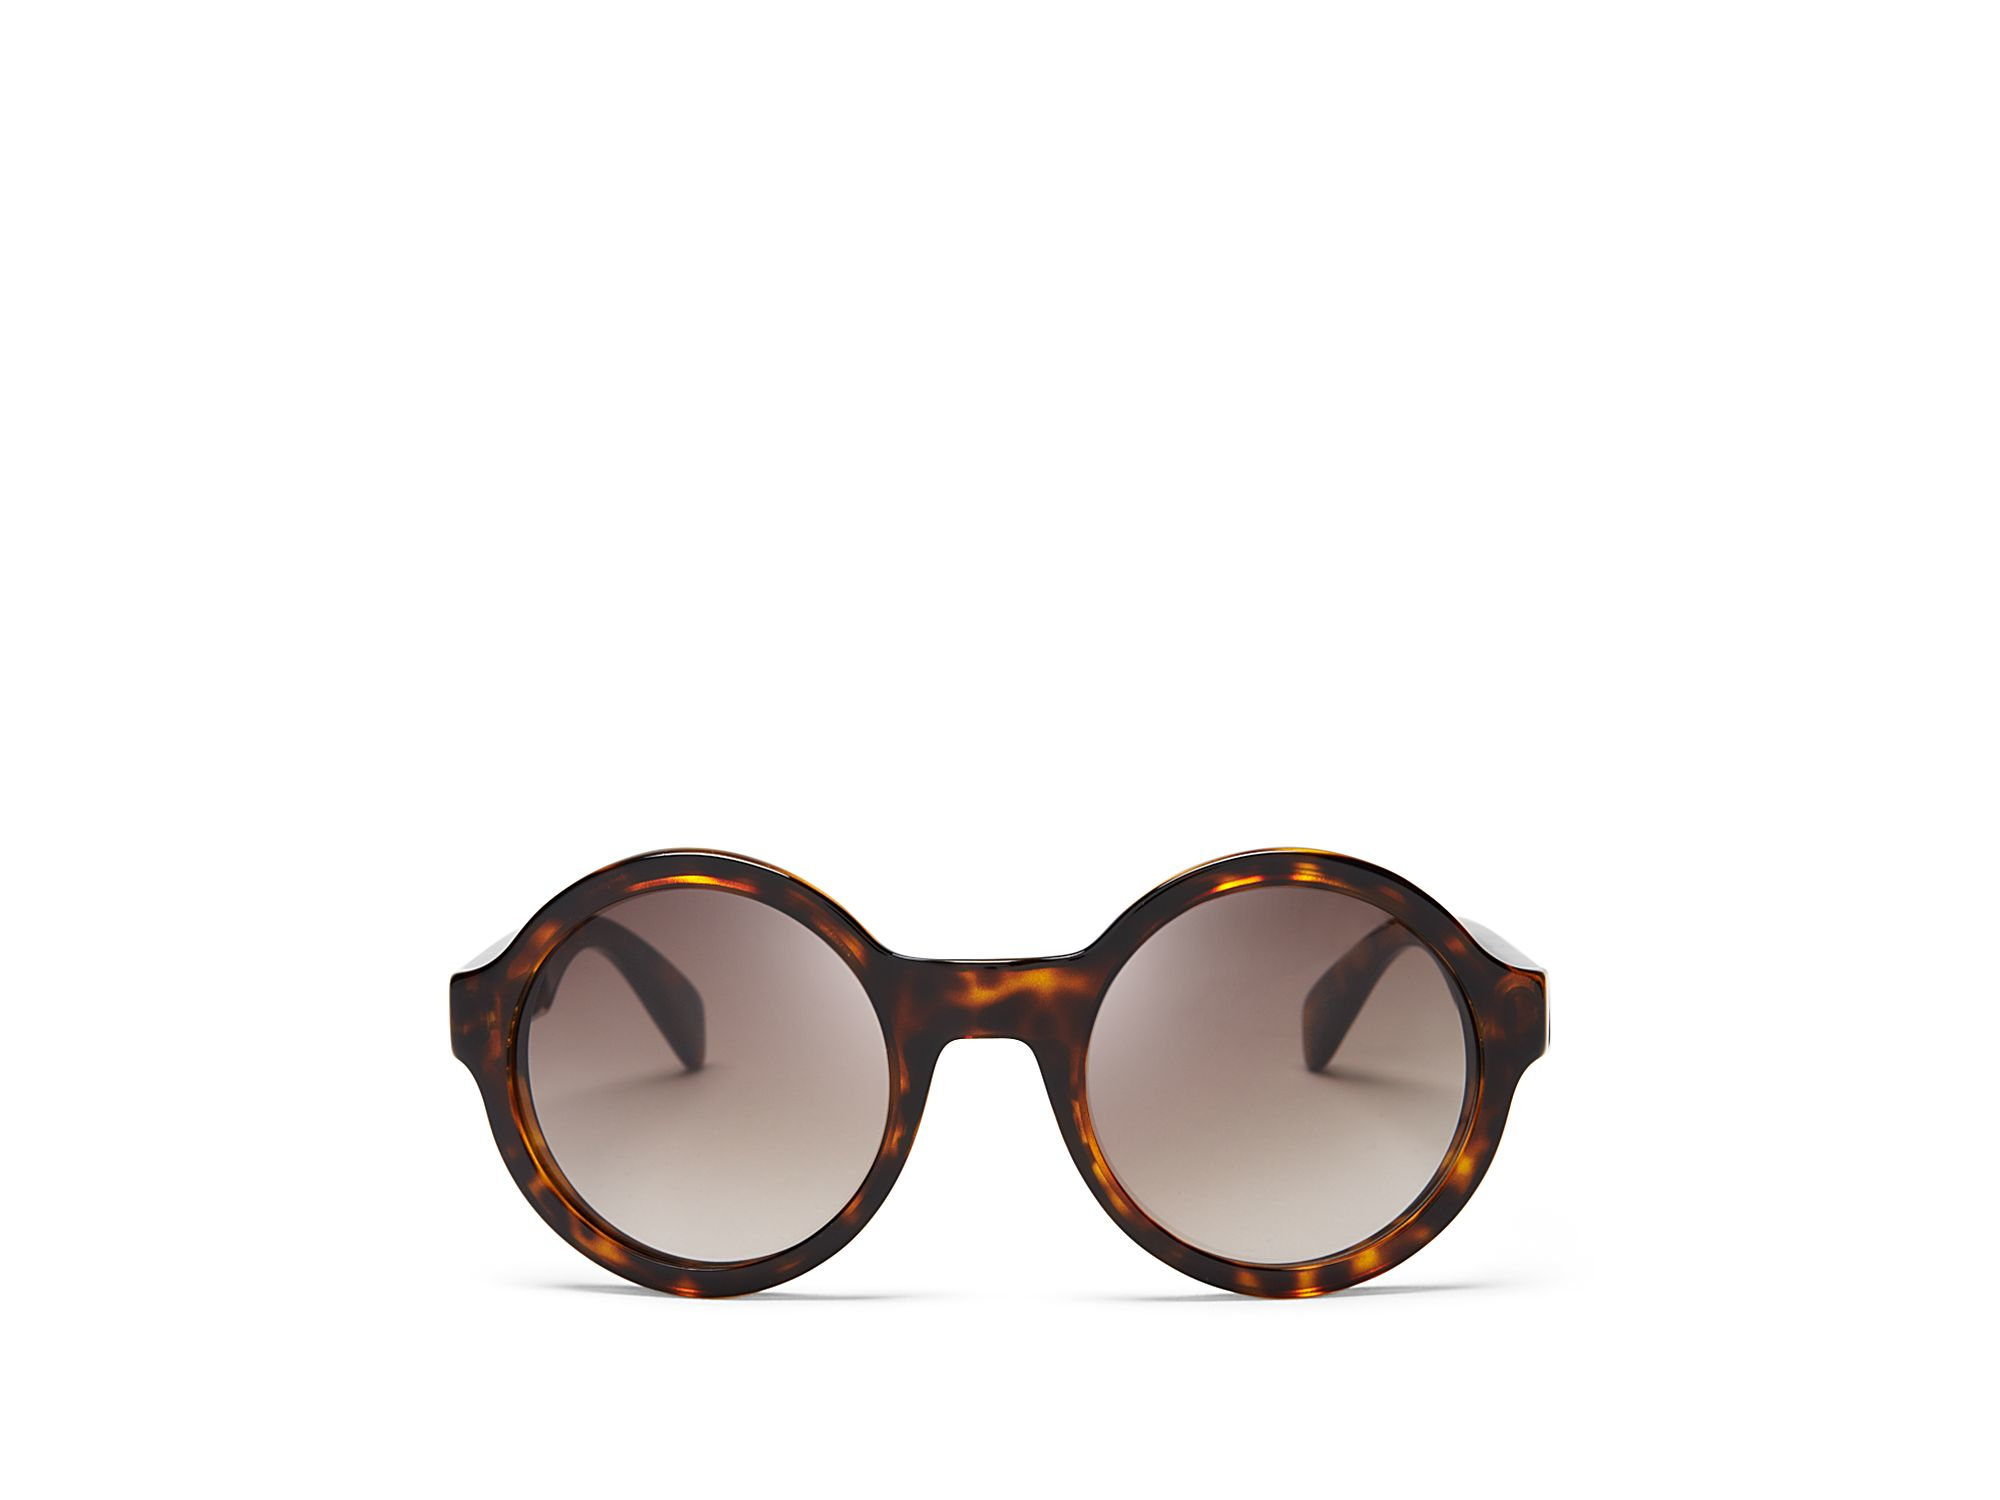 d9f5517f5aae Marc By Marc Jacobs True Round Sunglasses in Brown - Lyst